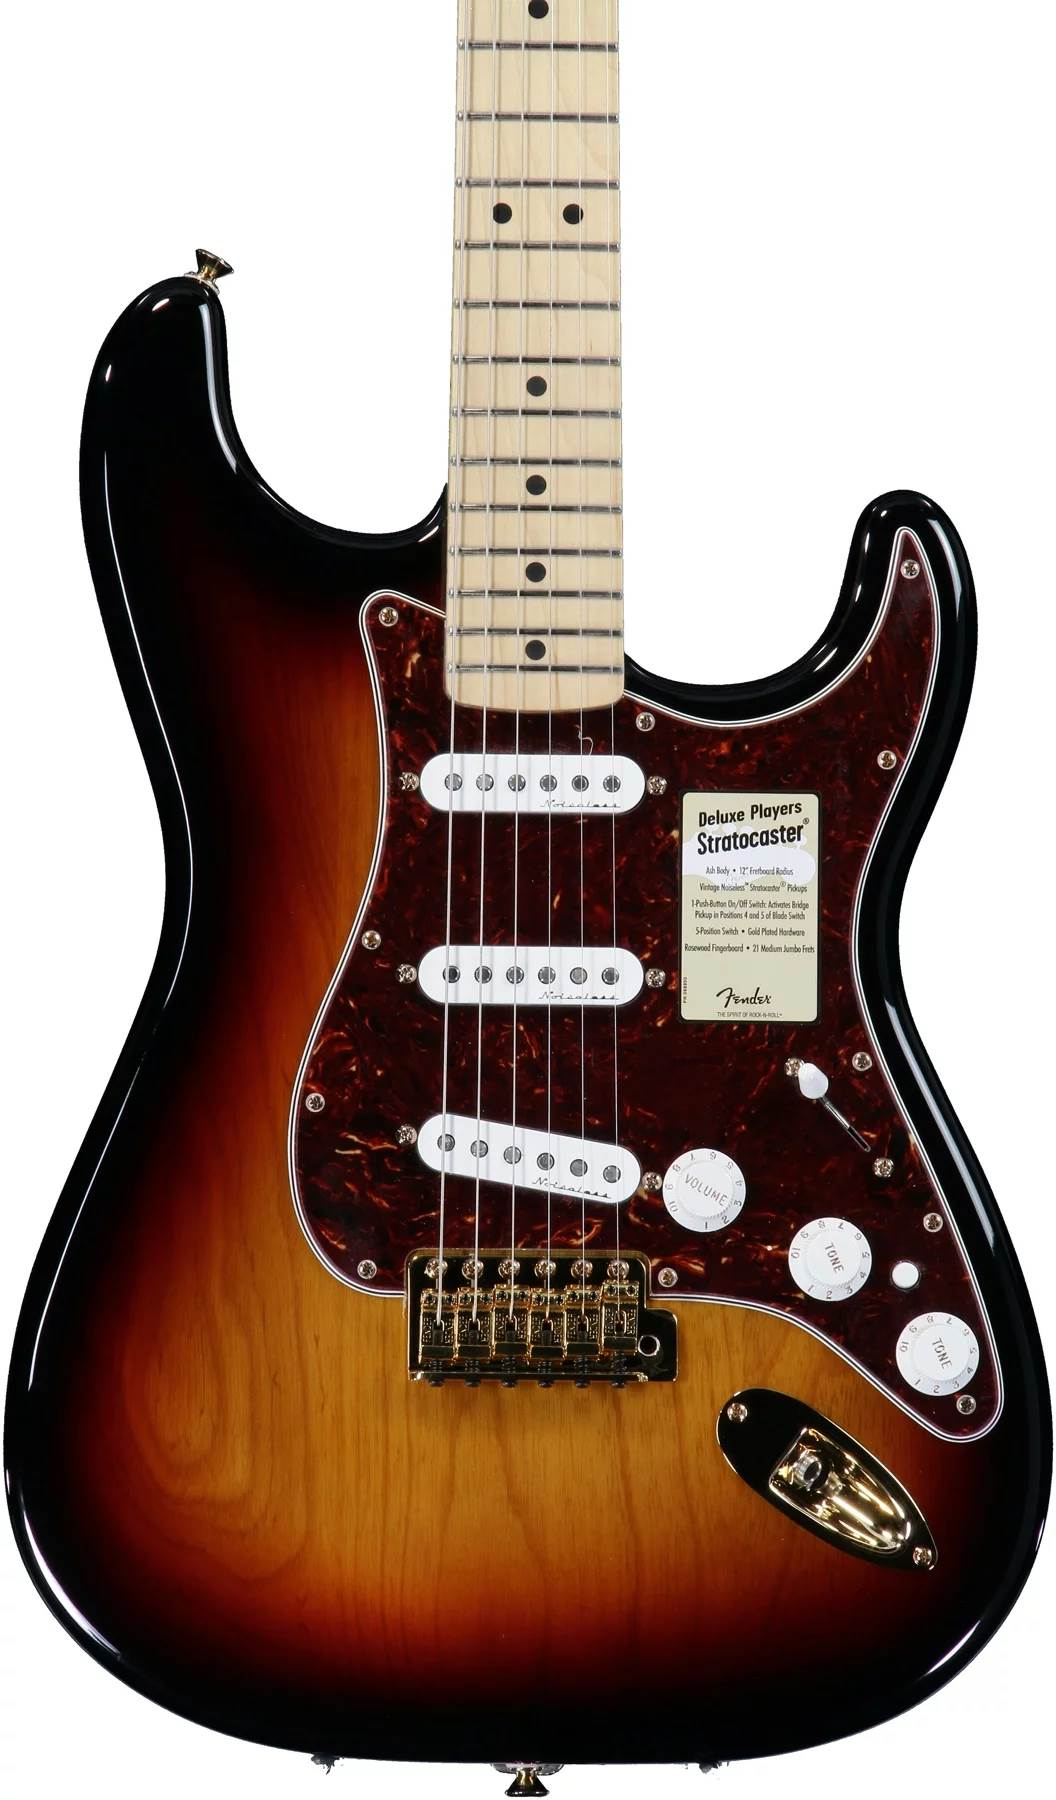 Deluxe Players Strat (MIM) - Fuzzfaced